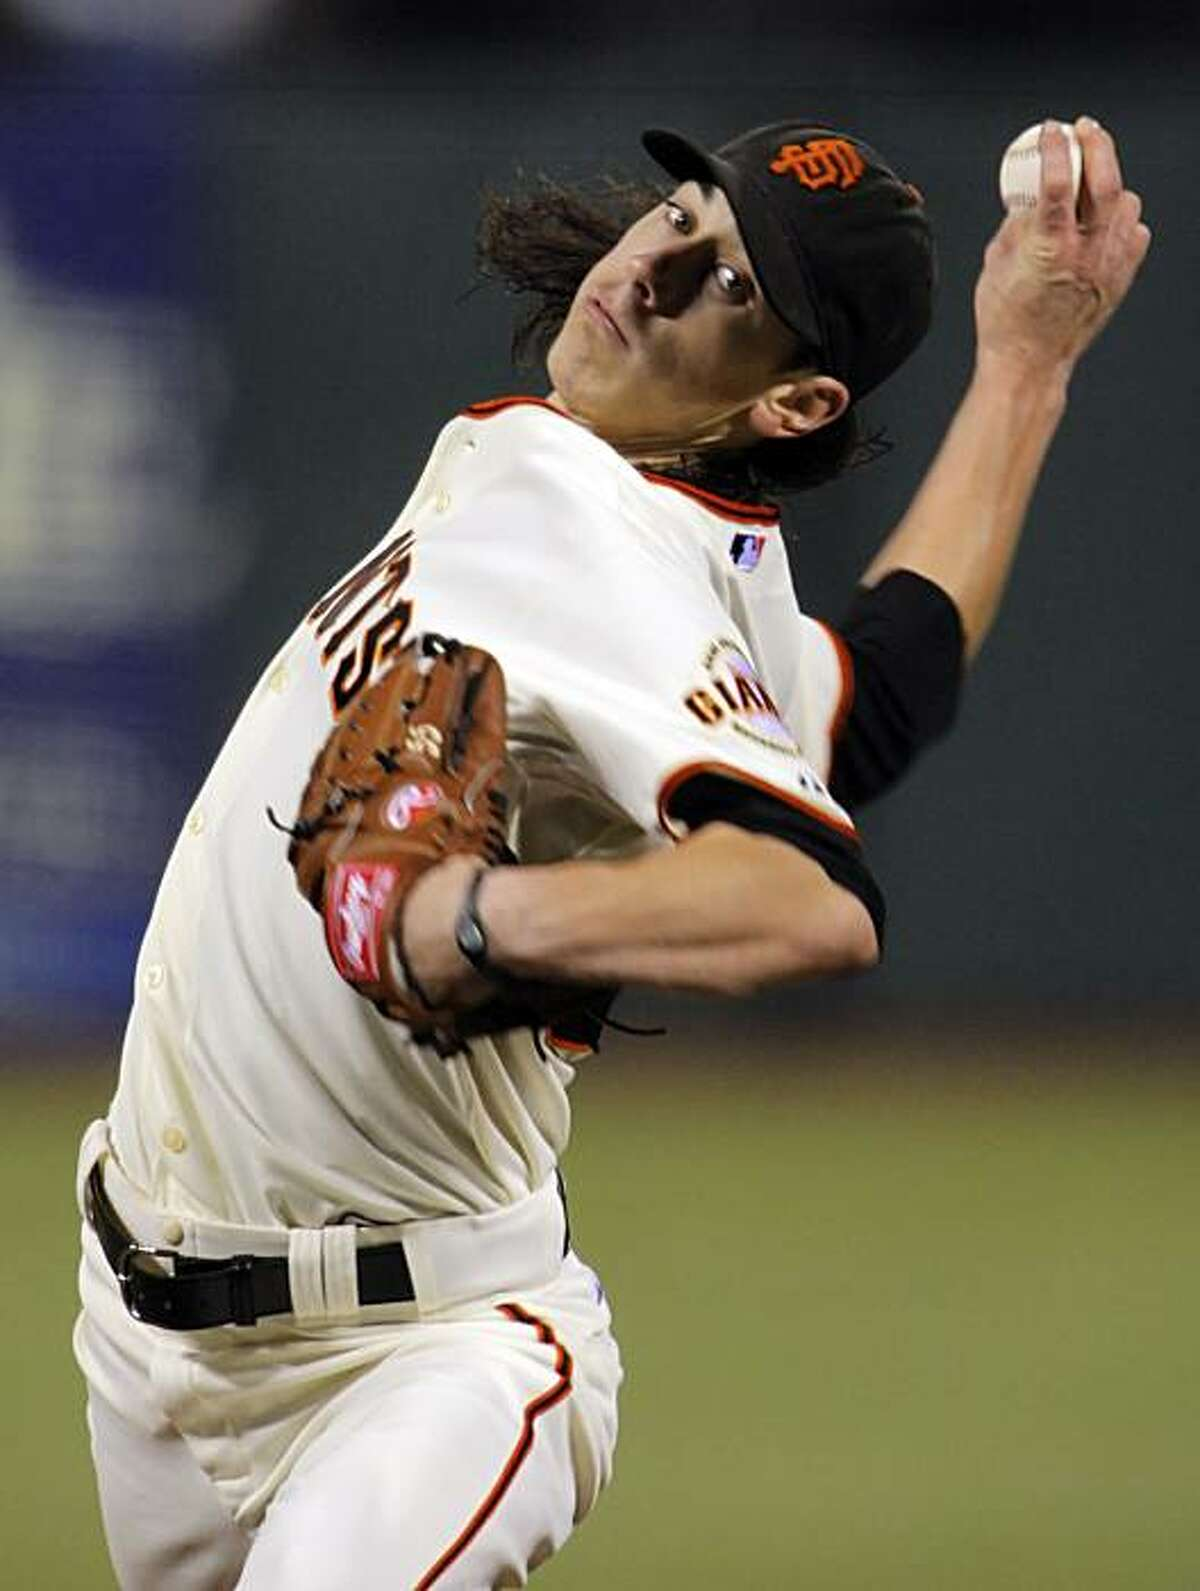 Tim Lincecum pitched a complete game shutout against the Mets on Thursday at AT&T Park.